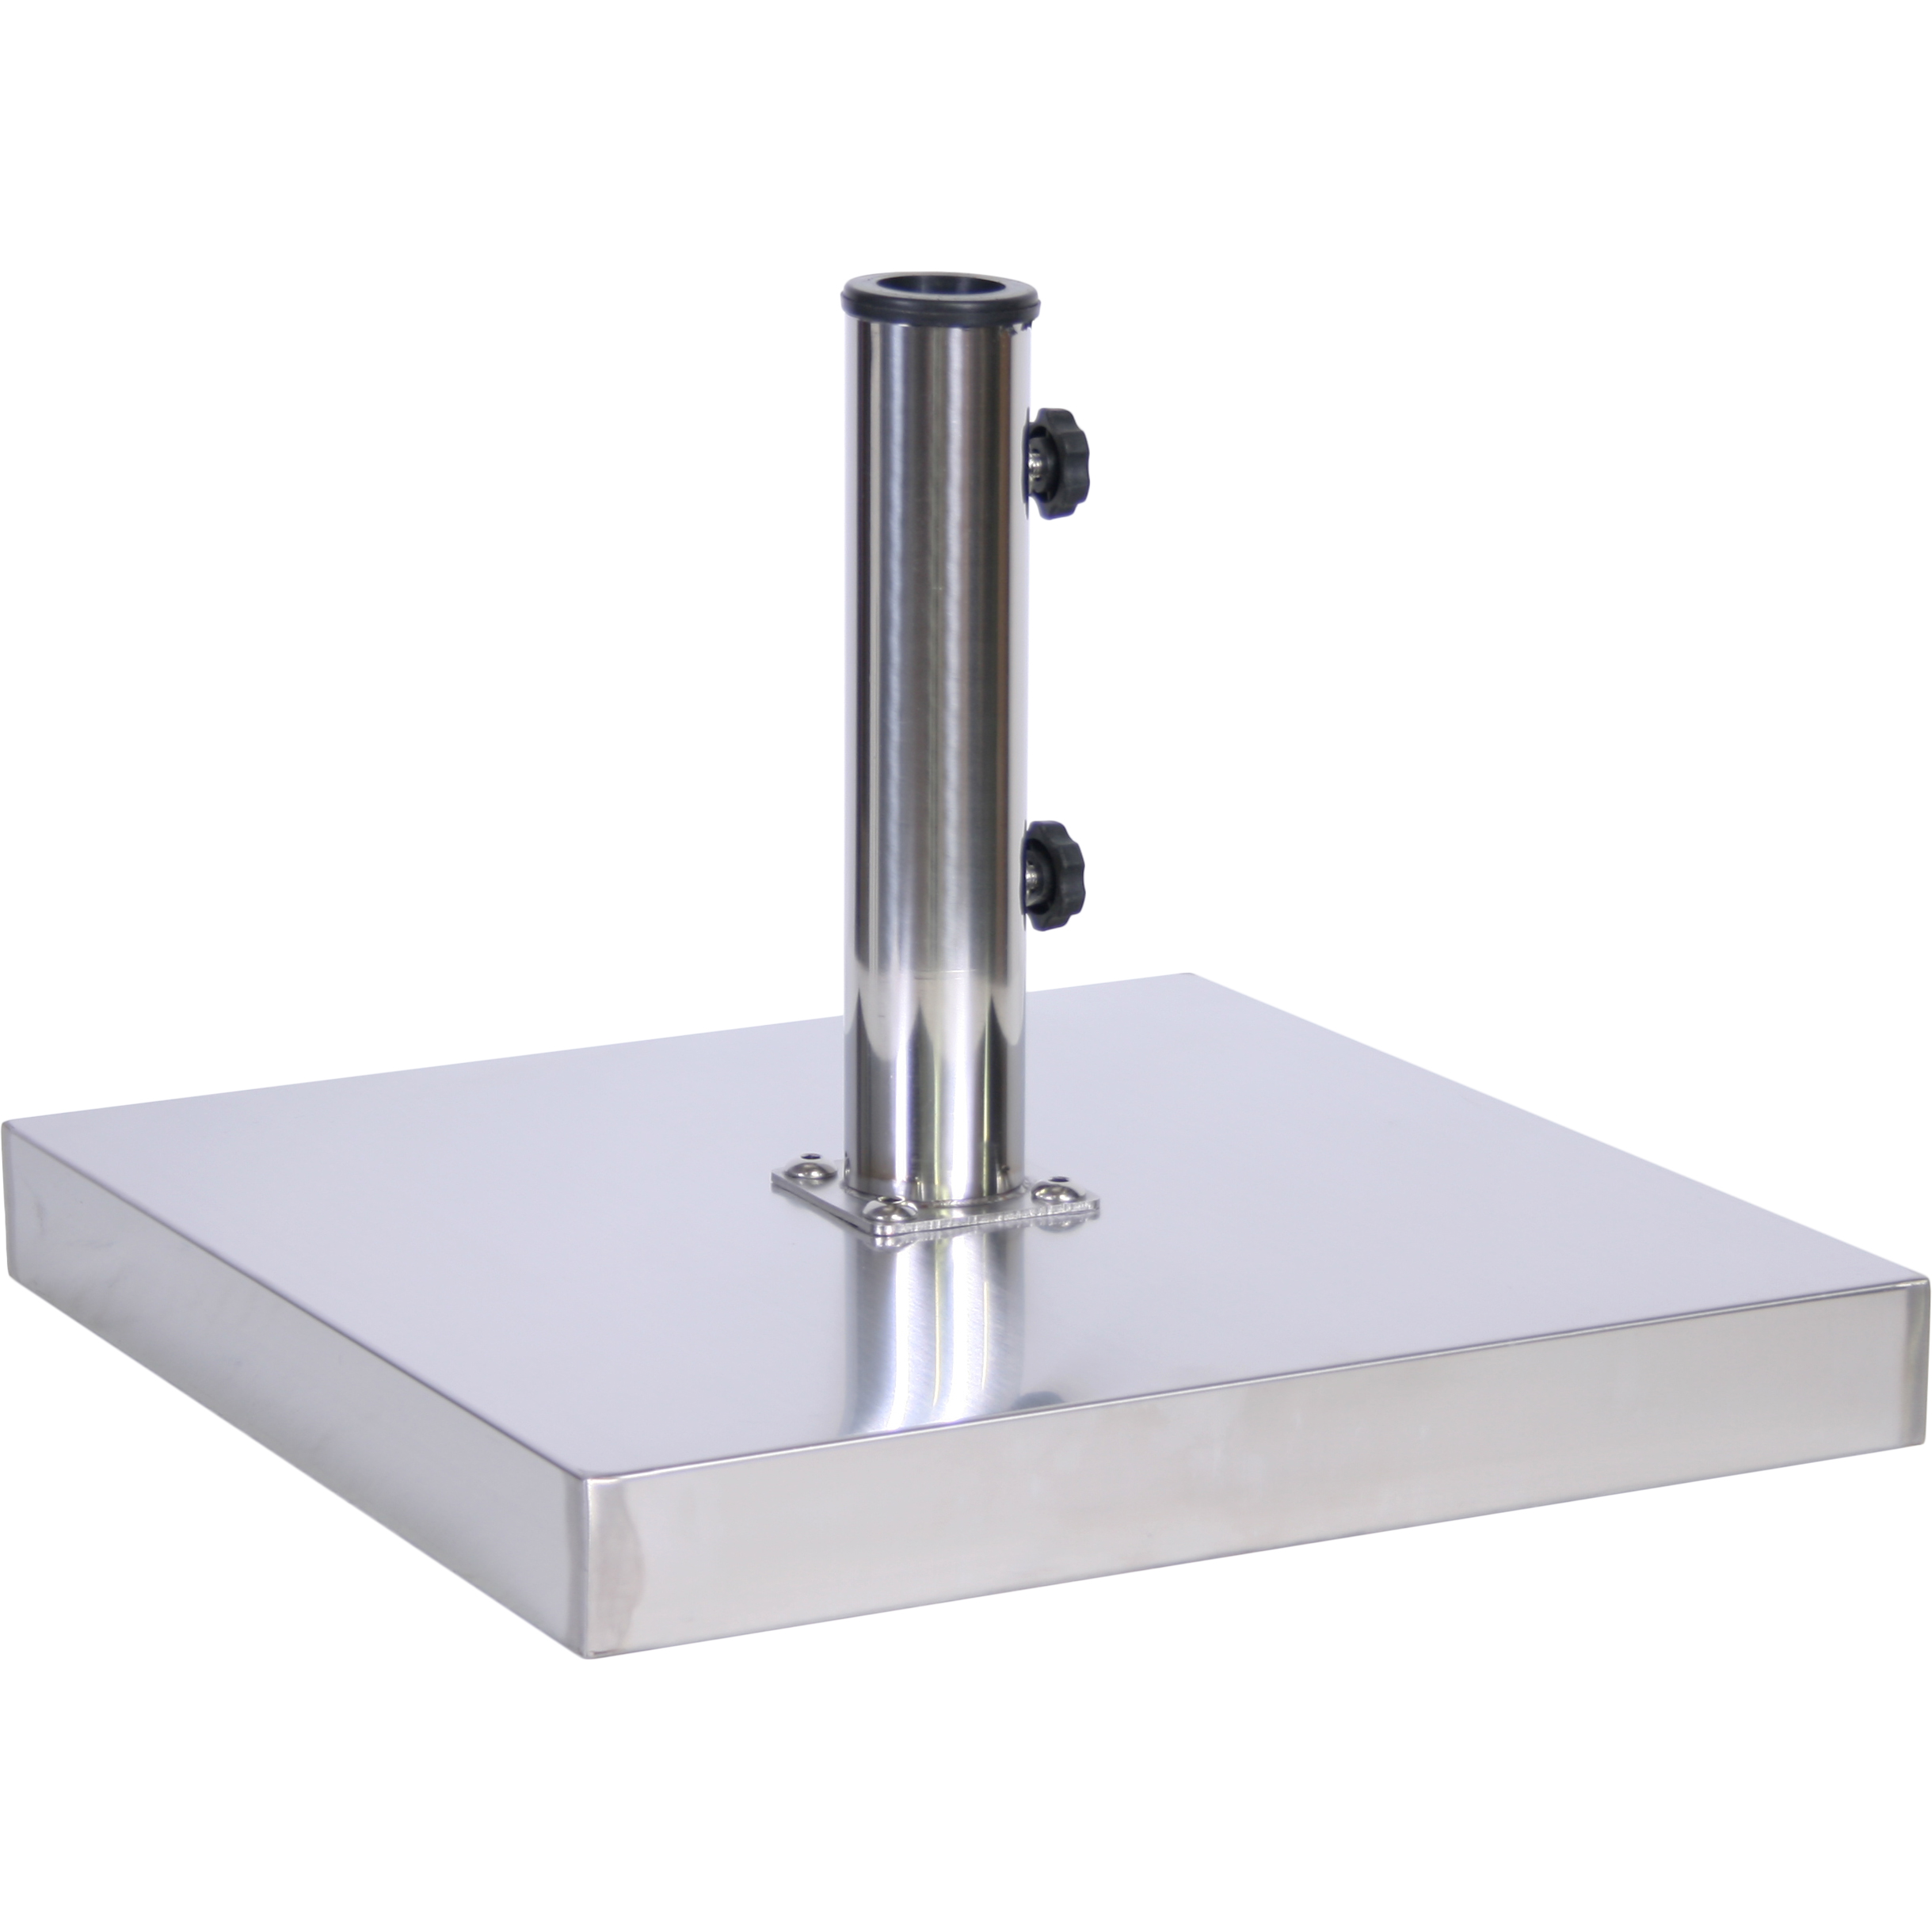 55 lb. Stainless Steel Cement Umbrella Base - MyUmbrellaShop.com